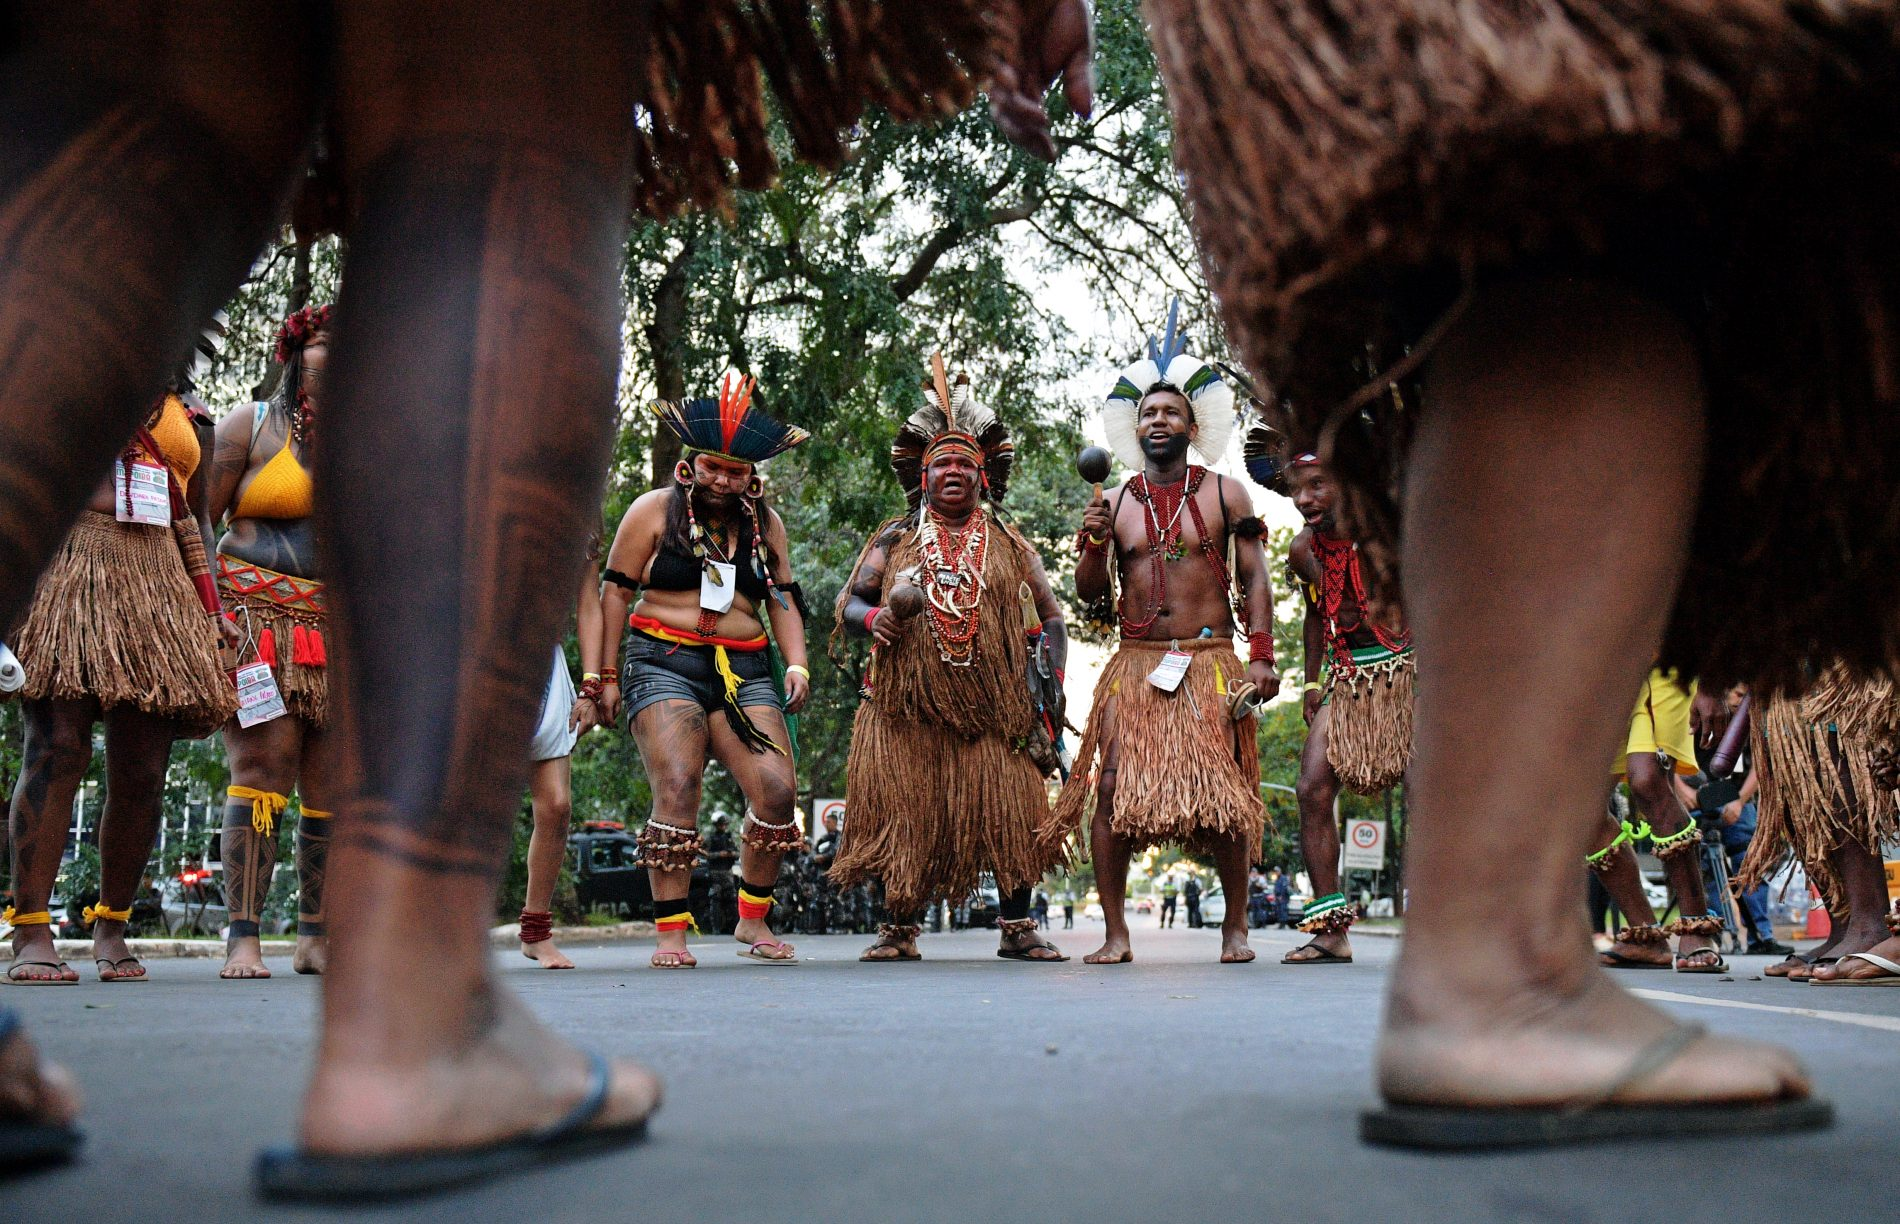 Brazilian indigenous men perform a ritual dance during a protest against the government's decision not to recognize the land demarcation of indigenous people living in Raposa Serra do Sol, Roraima State, in Brasilia, on April 25, 2018. - About 2,500 indigenous people from different tribes are taking part in the Indigenous National Mobilization (MNI) week - a mobilization which seeks to tackle territorial rights' negotiations with the government. (Photo by CARL DE SOUZA / AFP)